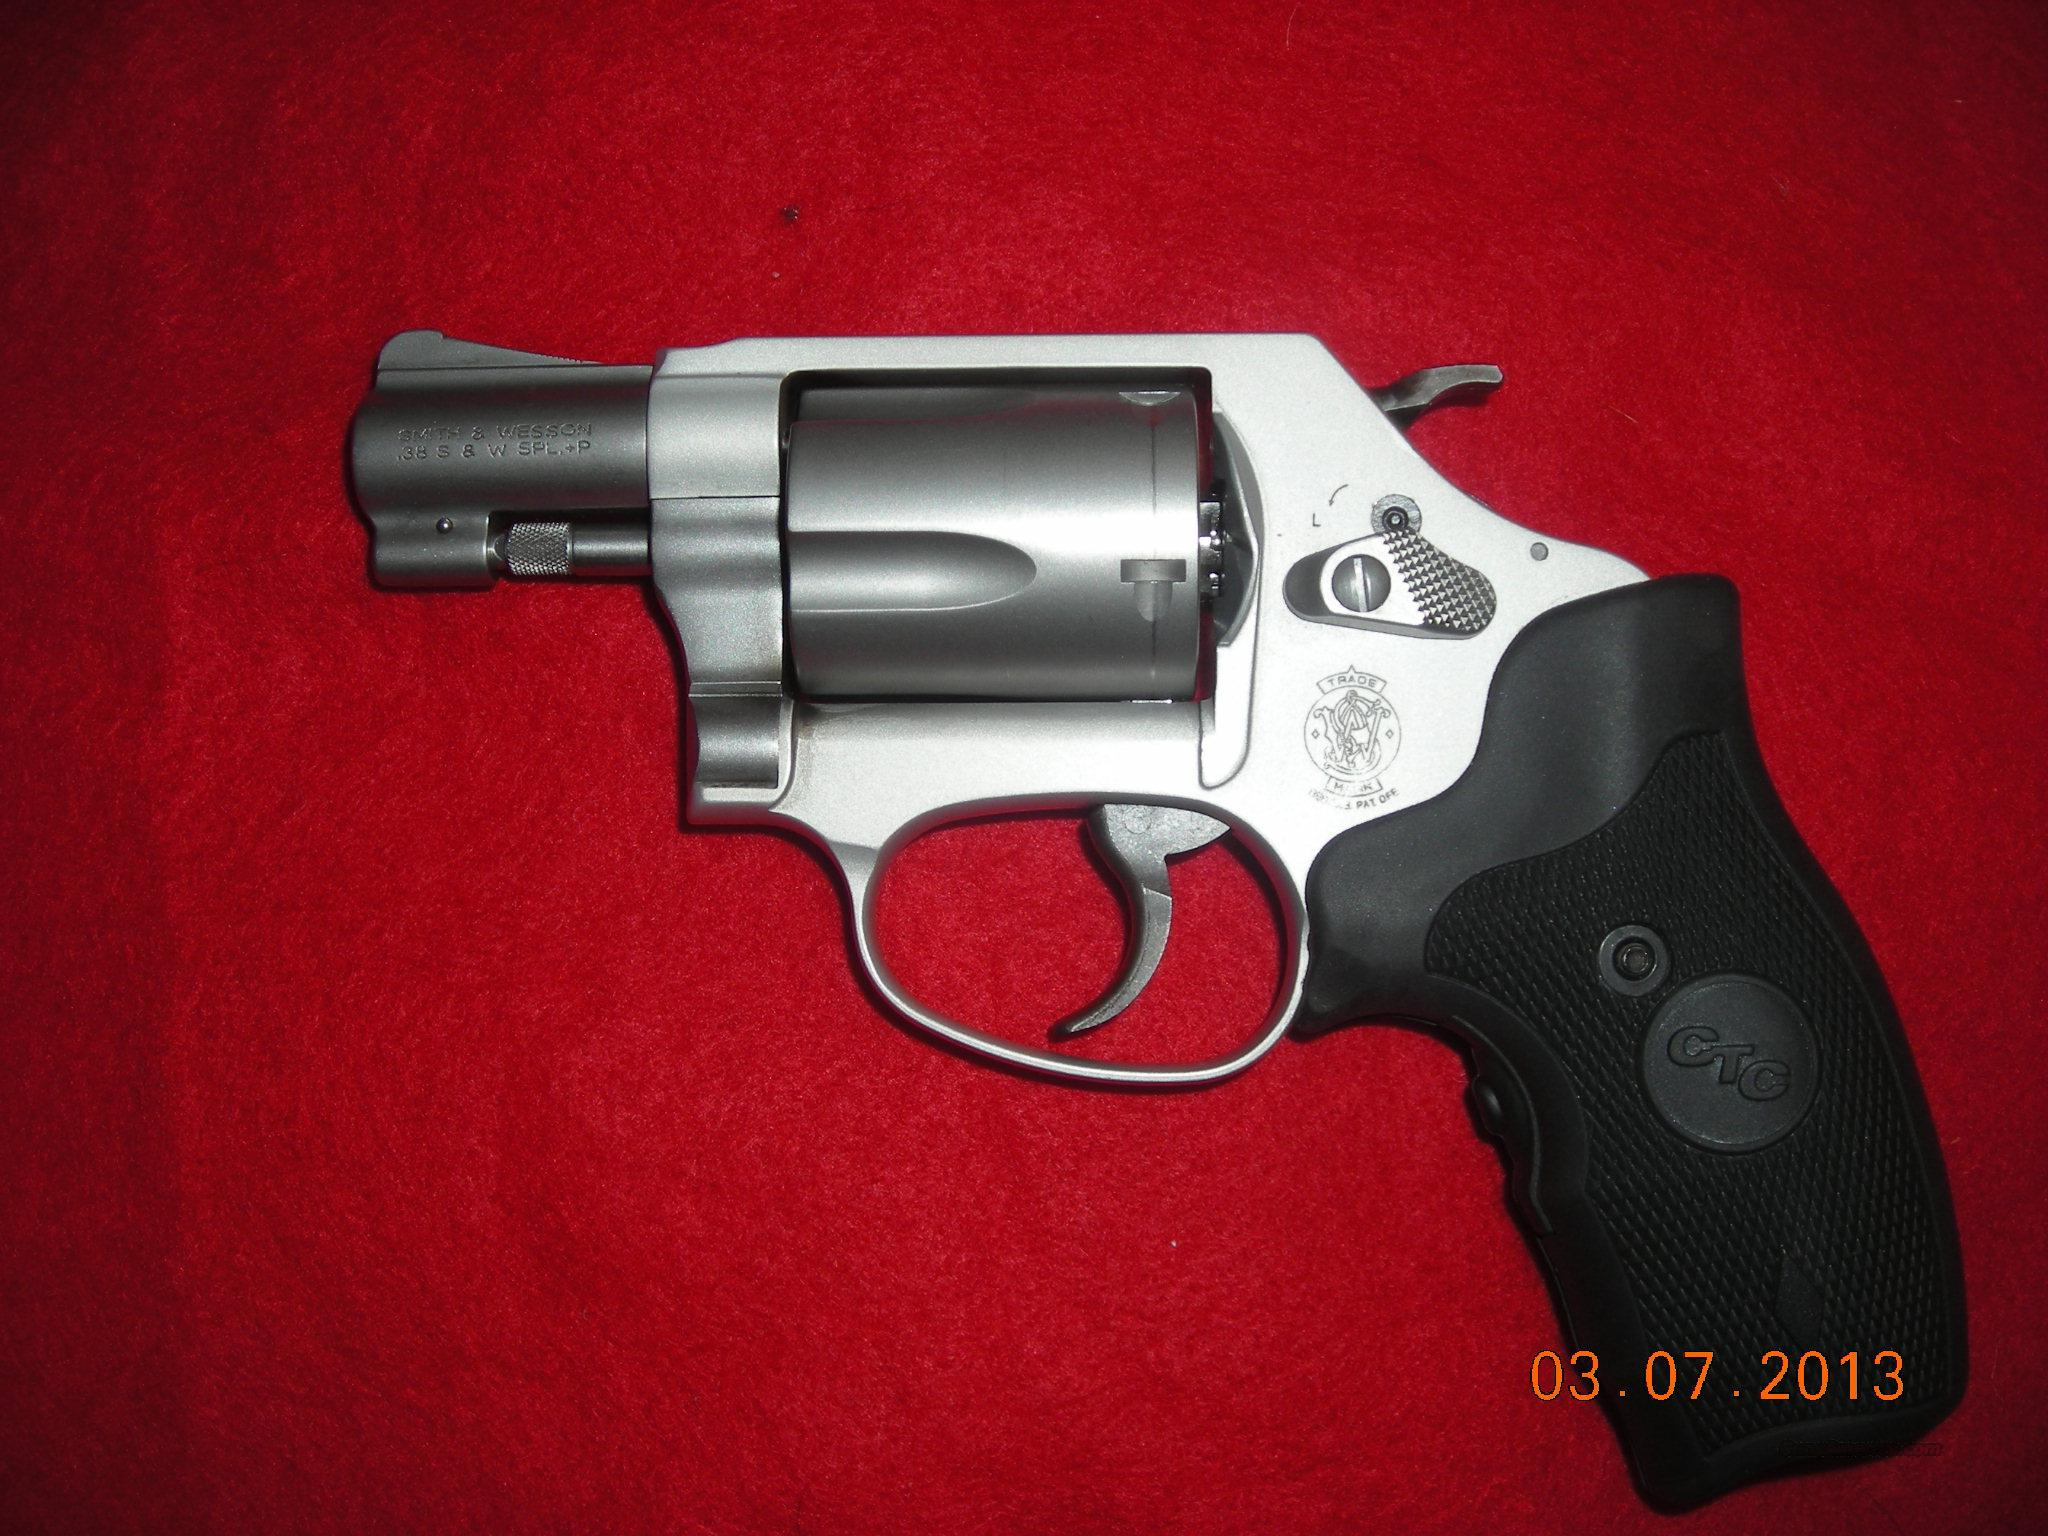 SMITH AND WESSON MODEL 637 W/ LASER  Guns > Pistols > Smith & Wesson Revolvers > Pocket Pistols